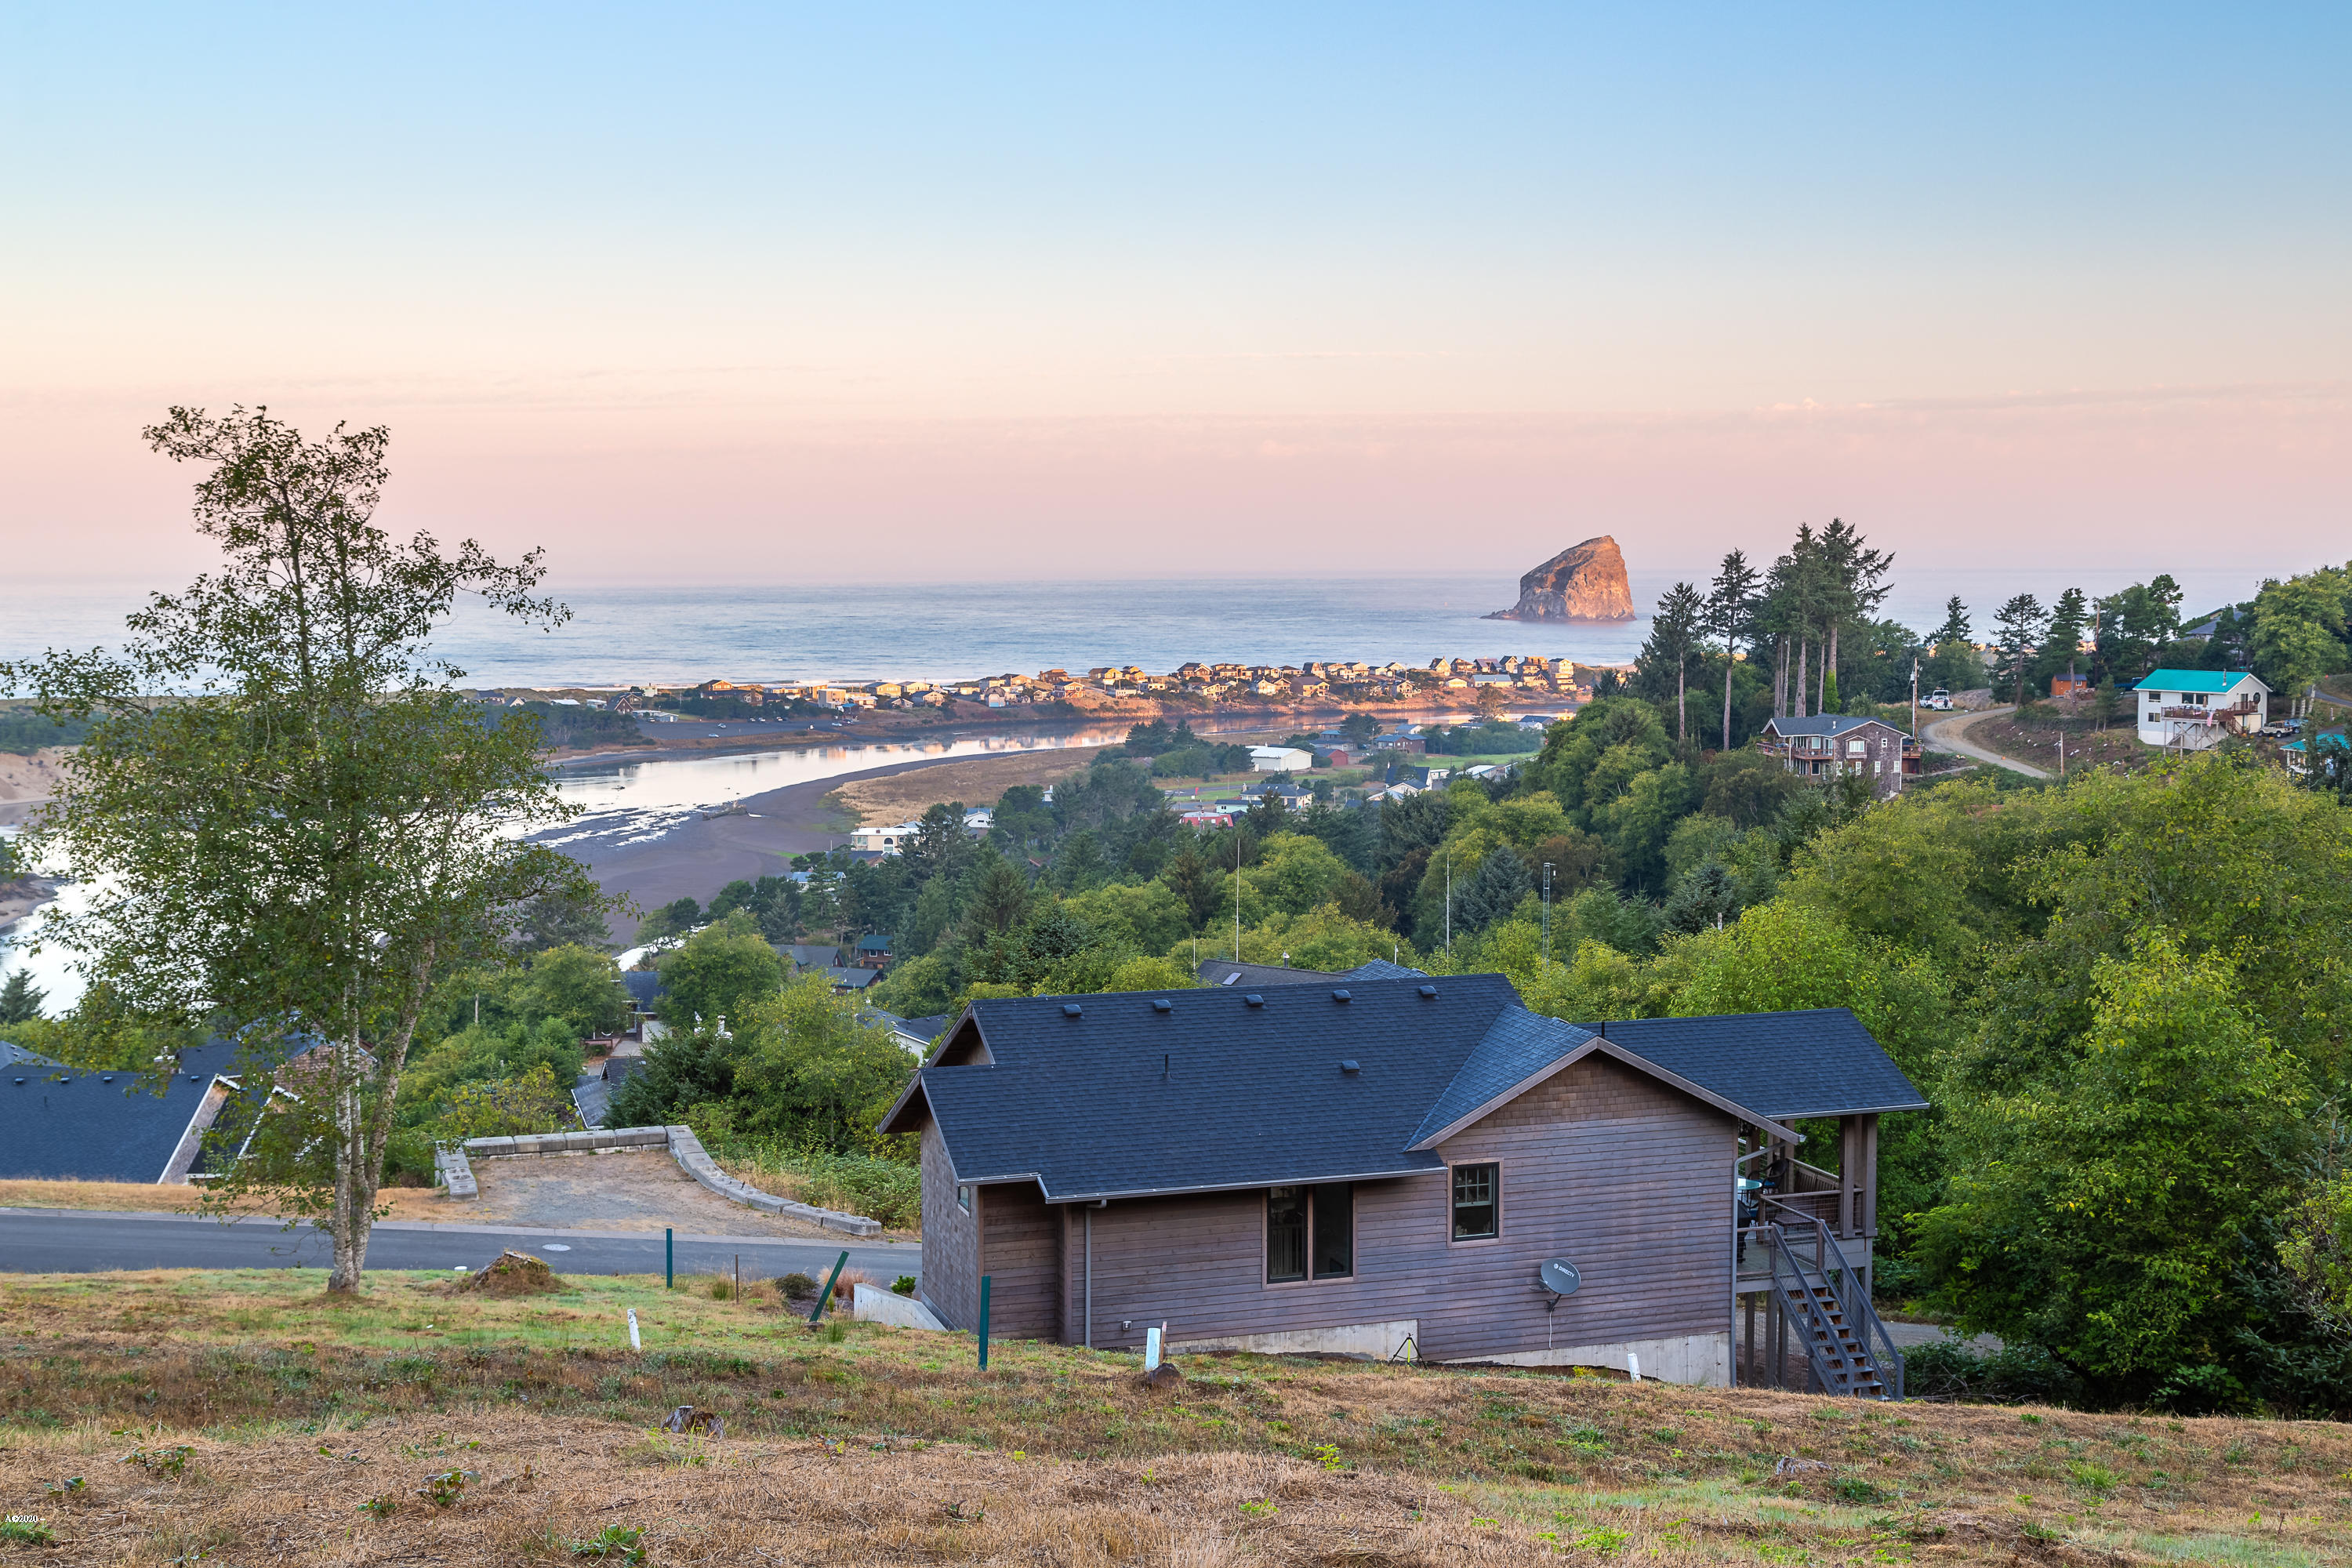 LOT 15 Brooten Mountain Lp, Pacific City, OR 97135 - SeawatchLot15-01